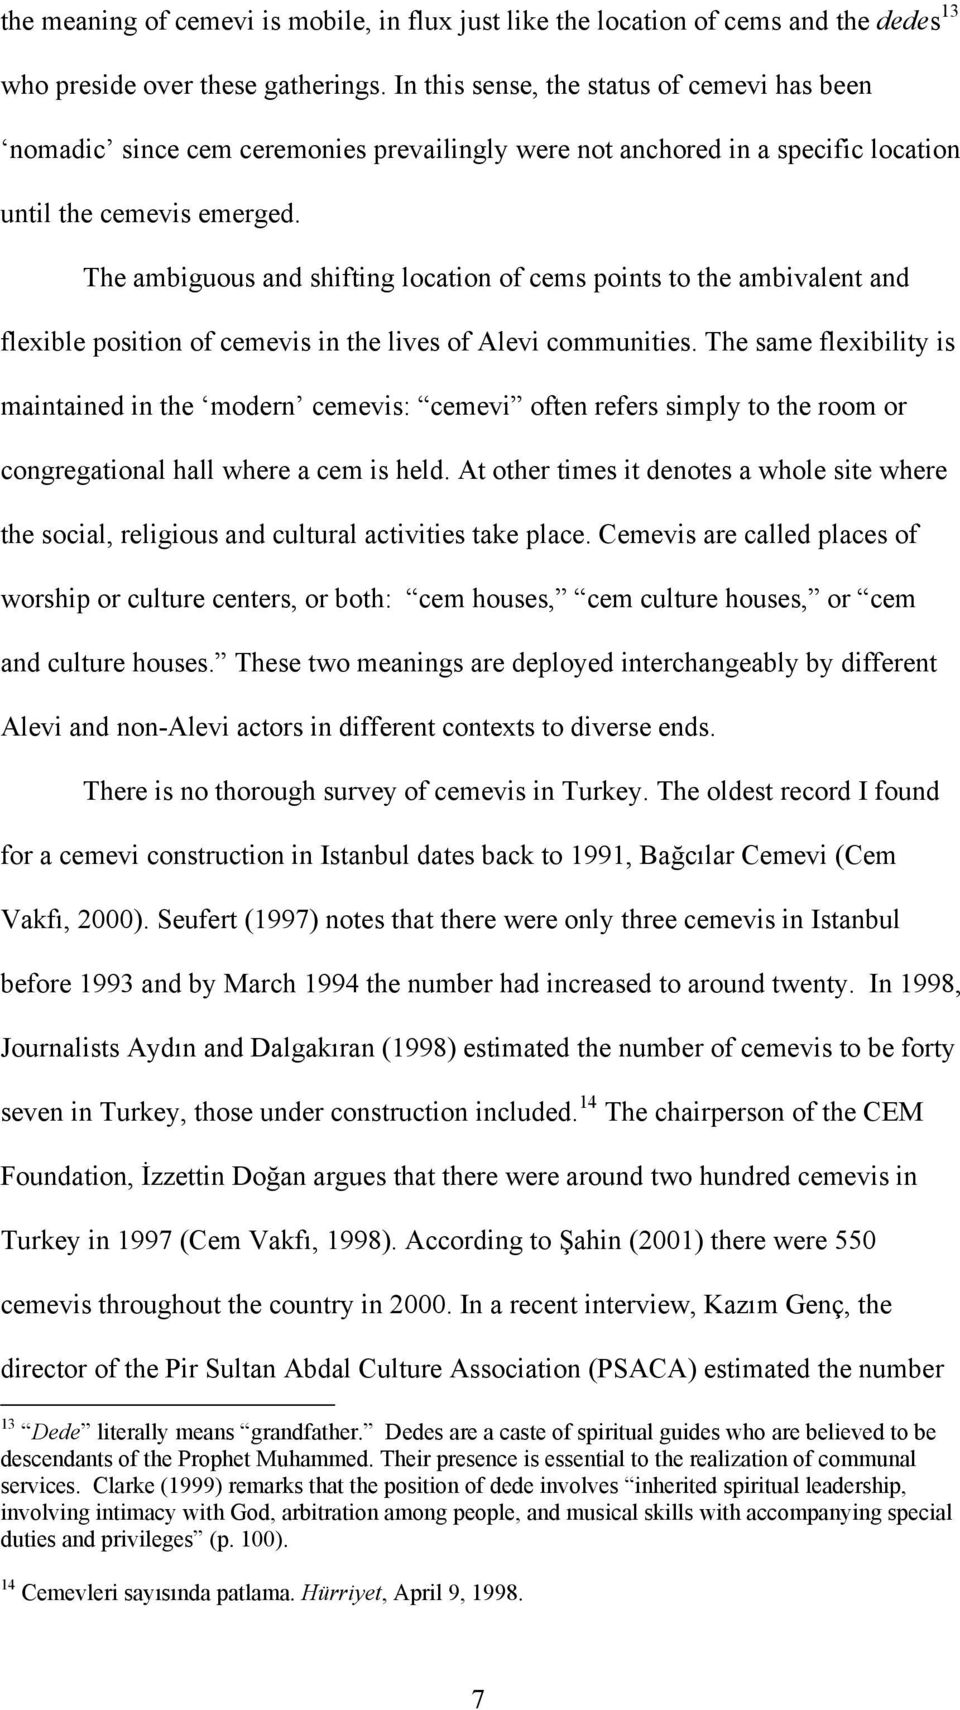 The ambiguous and shifting location of cems points to the ambivalent and flexible position of cemevis in the lives of Alevi communities.